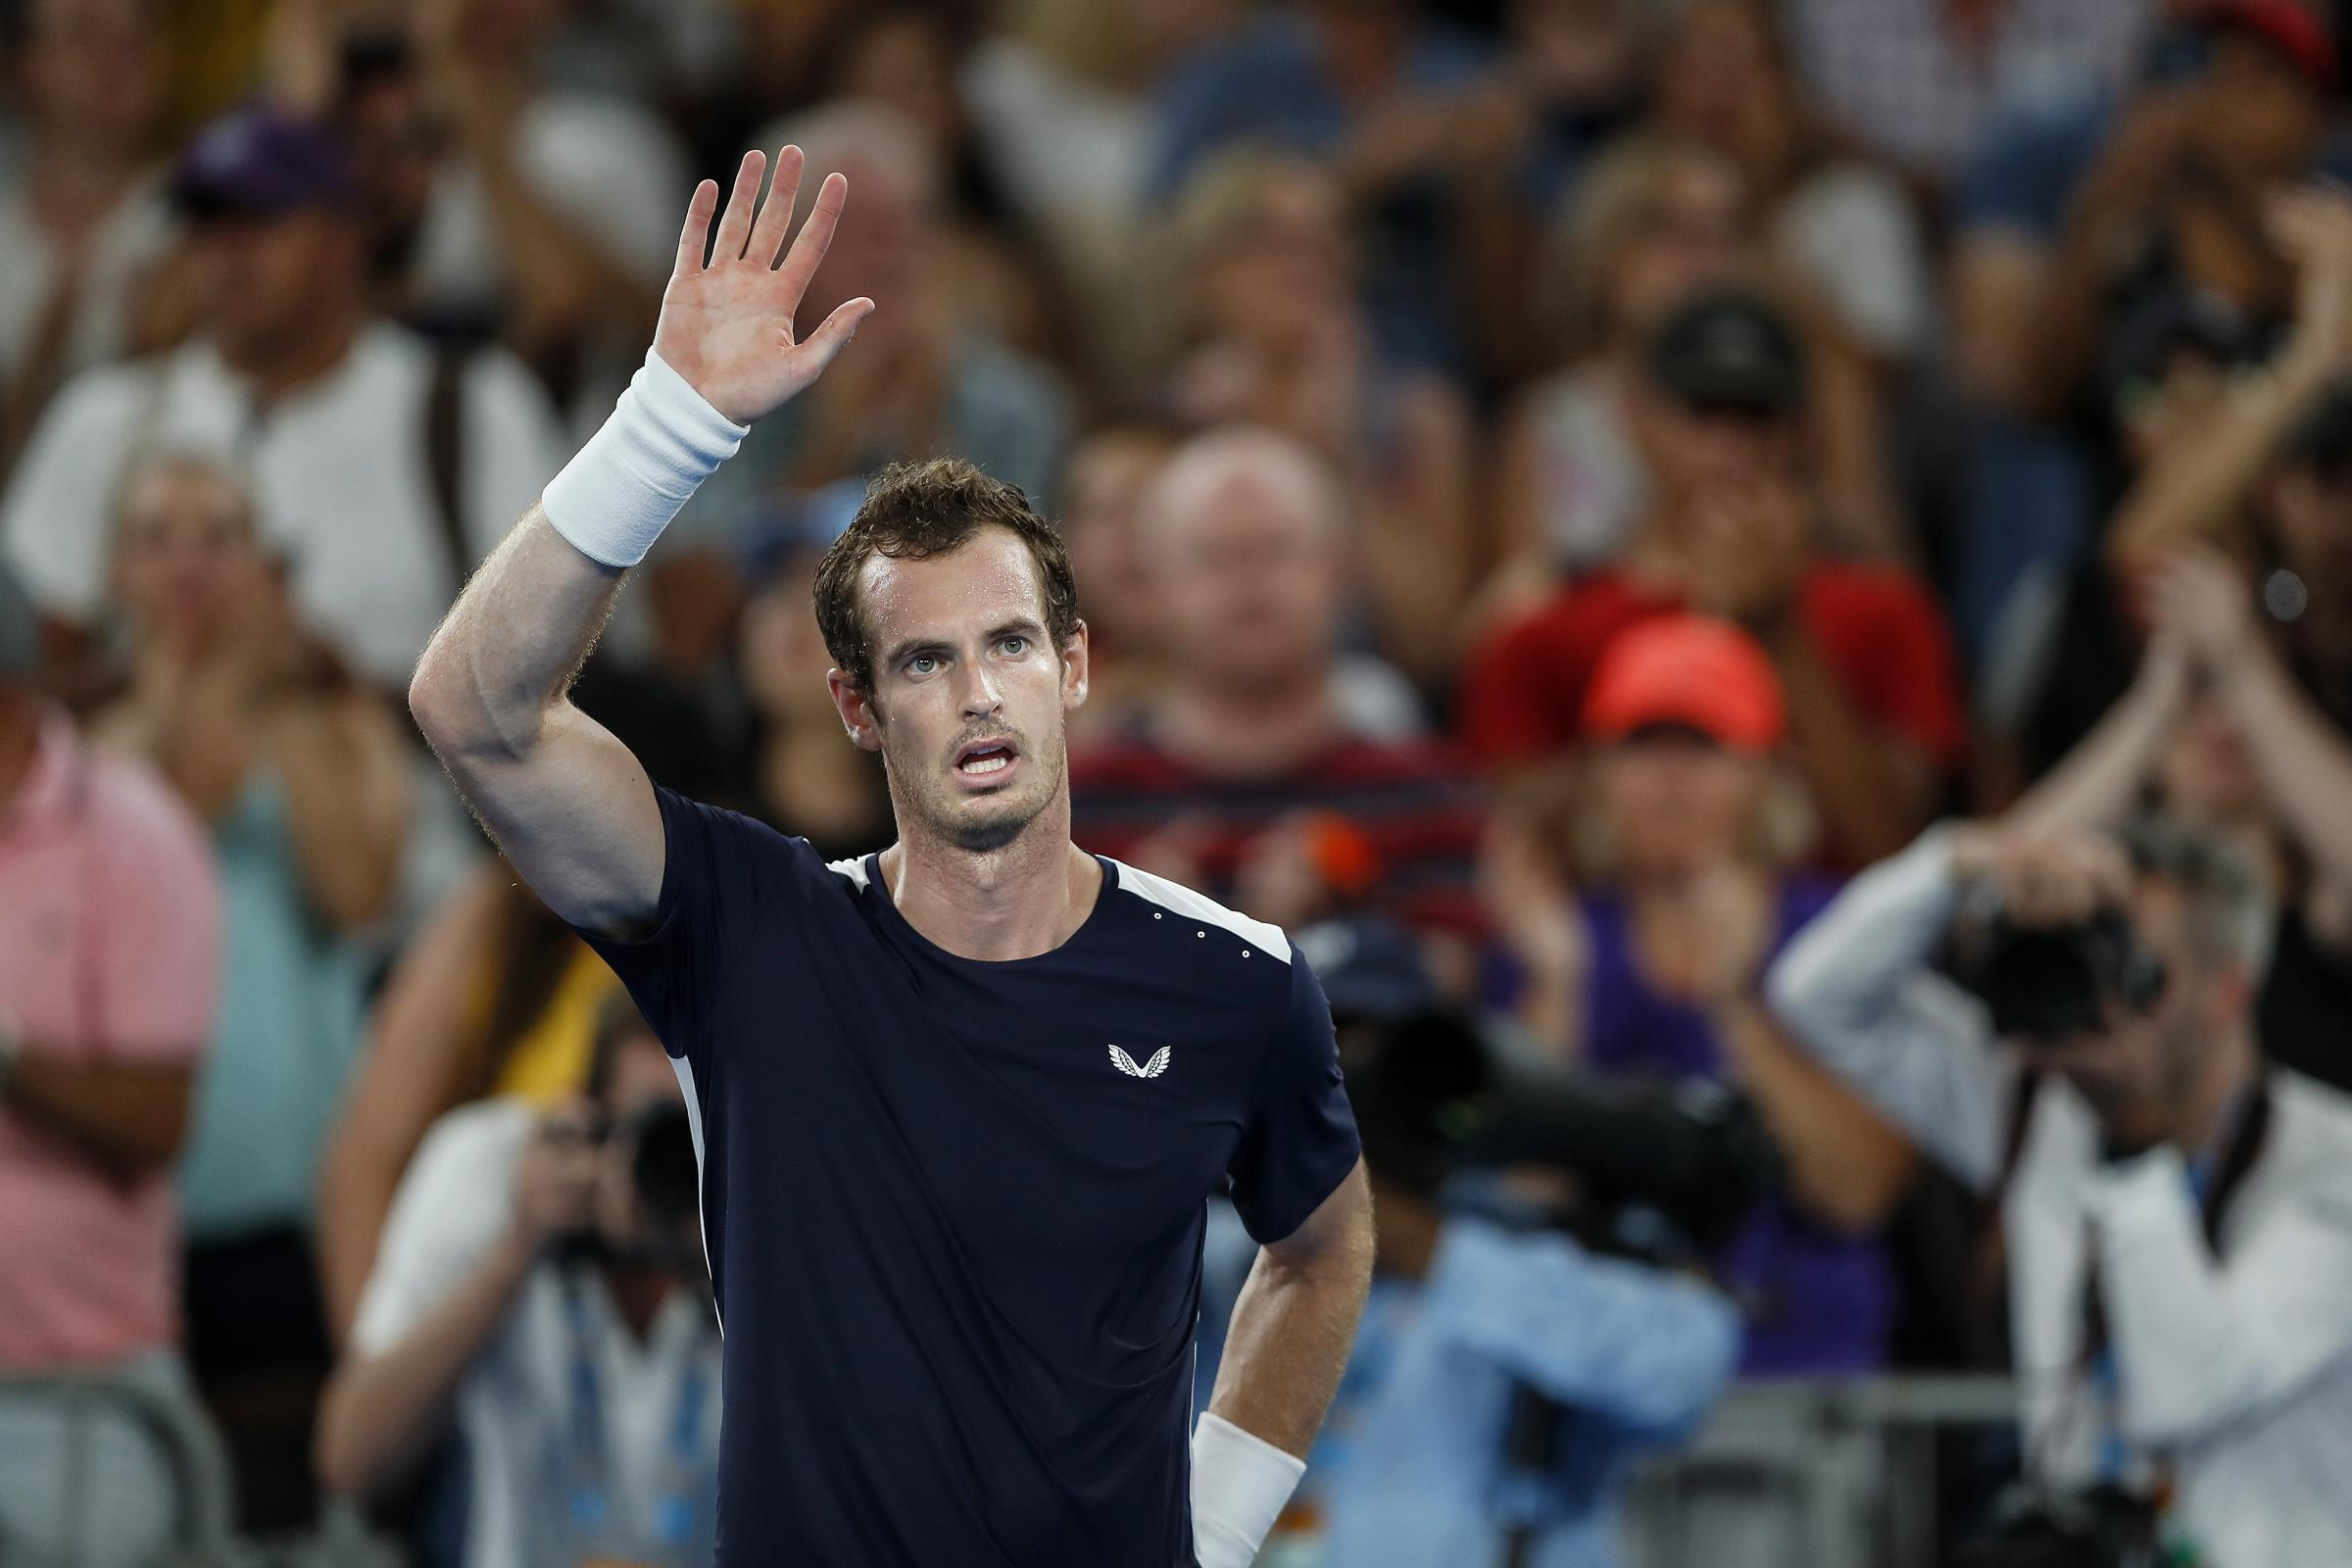 Andy Murray waves to the Melbourne crowd after his Australian Open exit (Photo by Fred Lee/Getty Images)